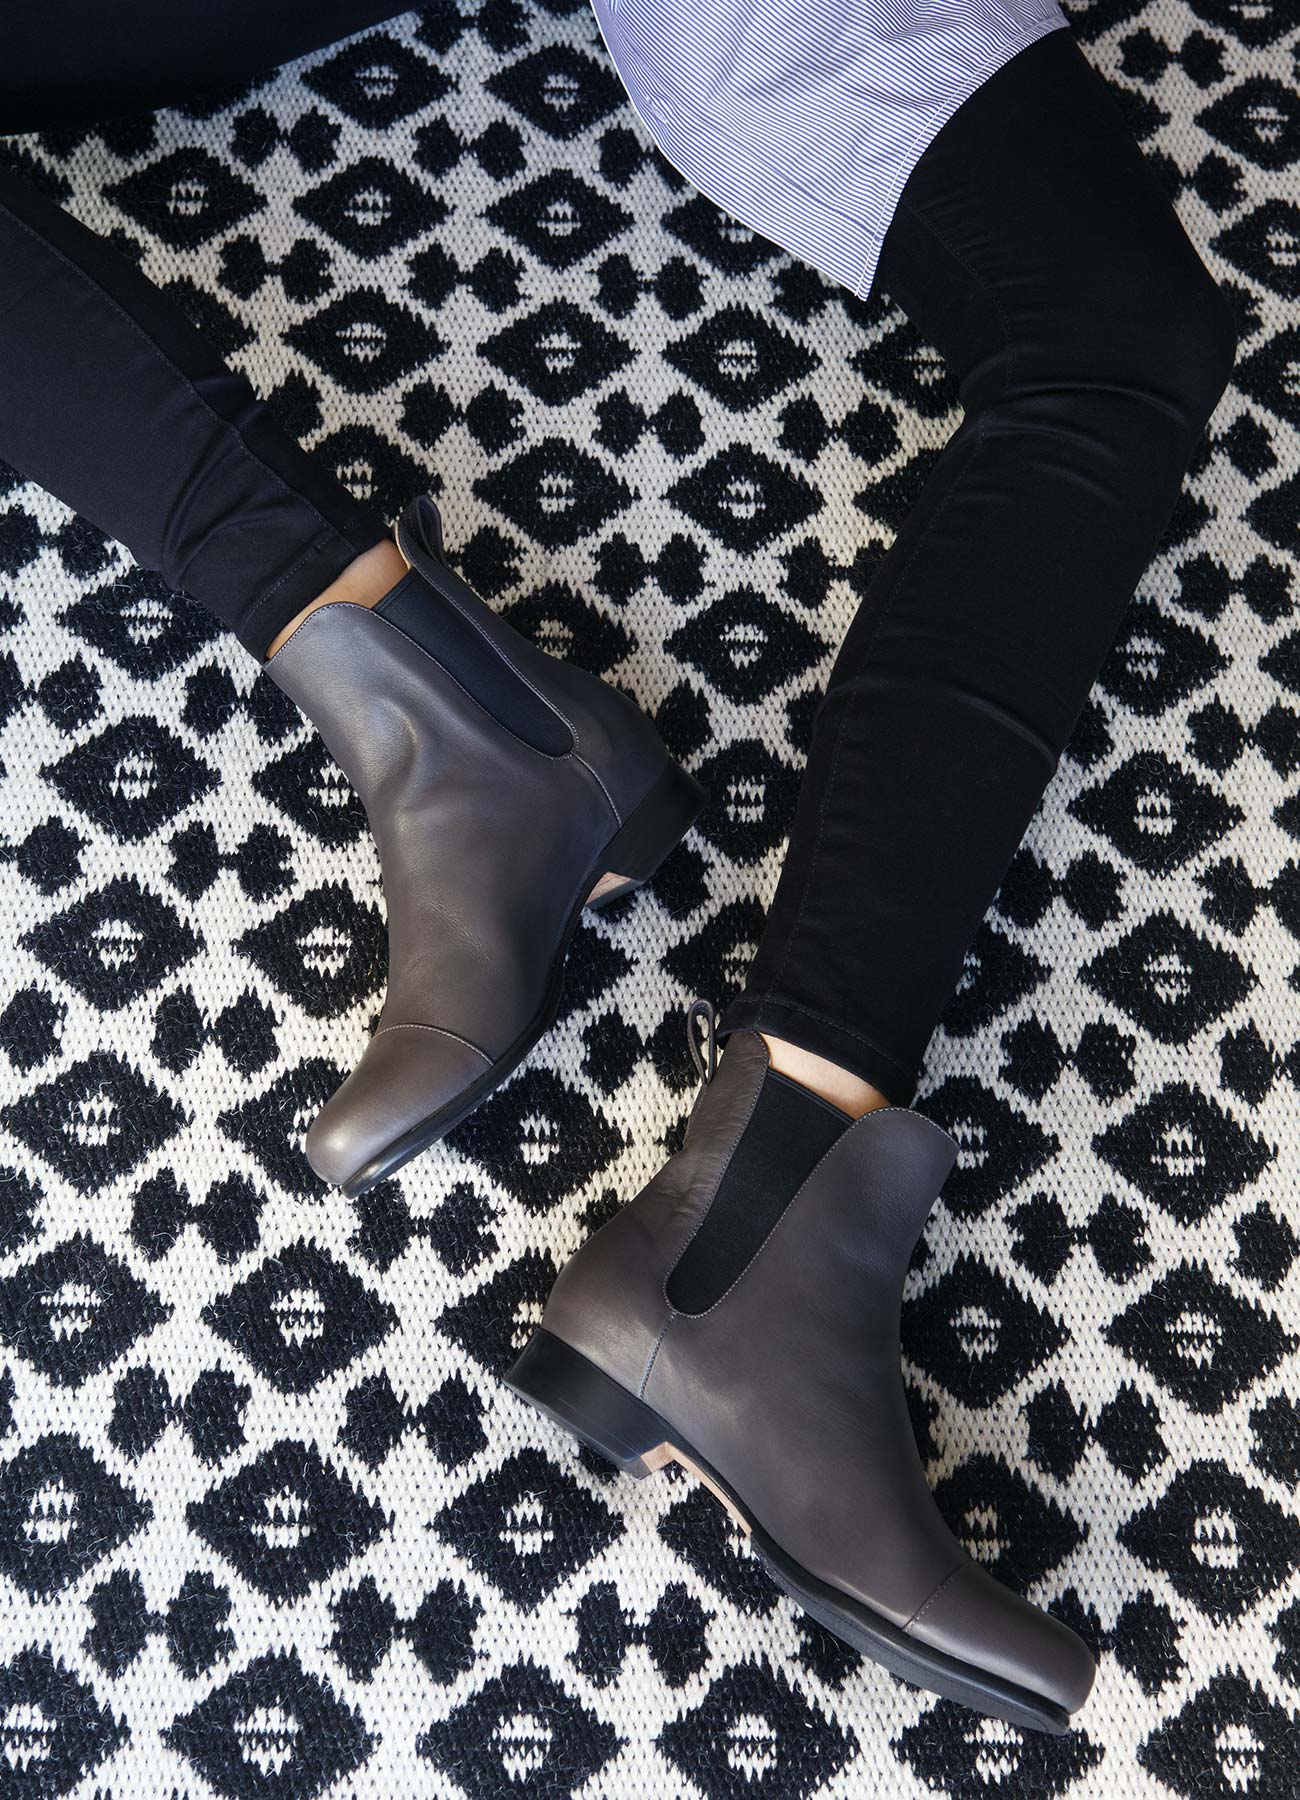 The Chelsea Boot in Carbon - Poppy Barley